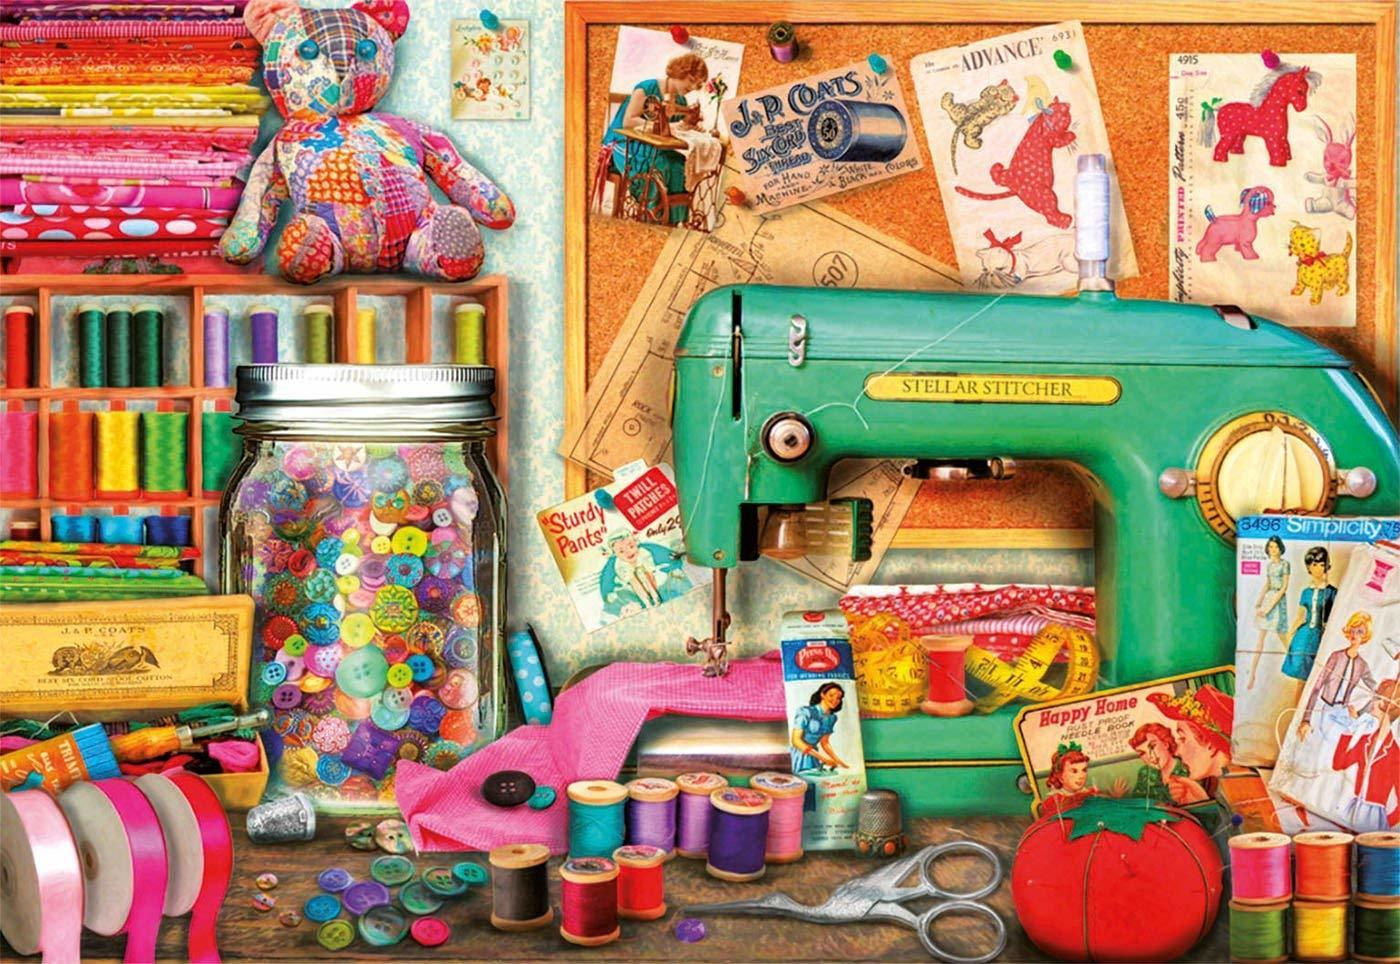 Educa Jigsaw Puzzle Sewing Corner 1000 Piece